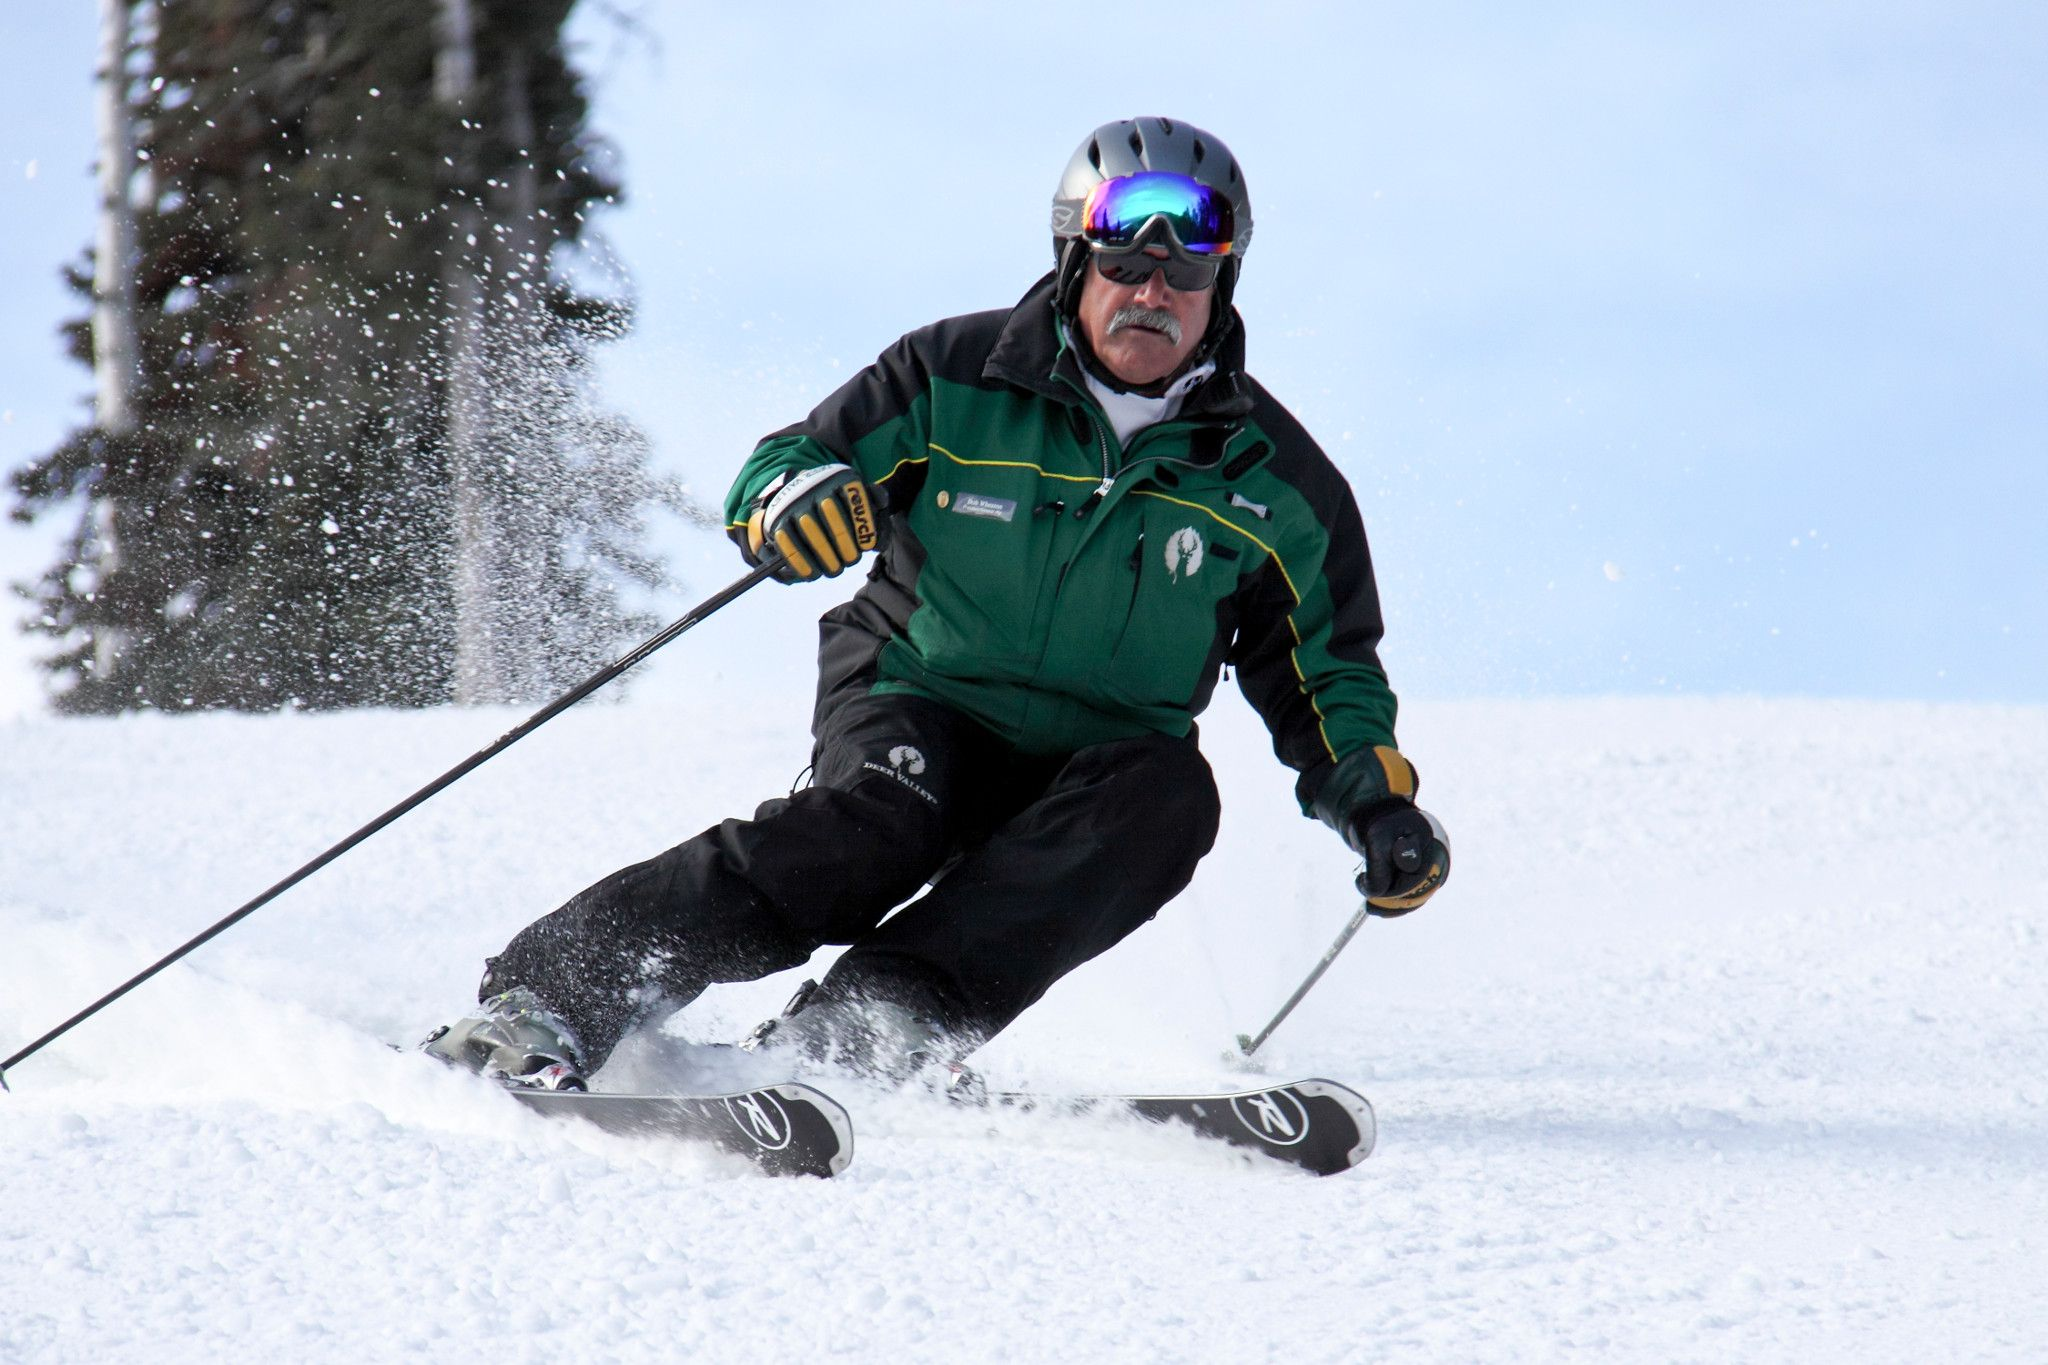 Bob Wheaton skiing at Deer Valley